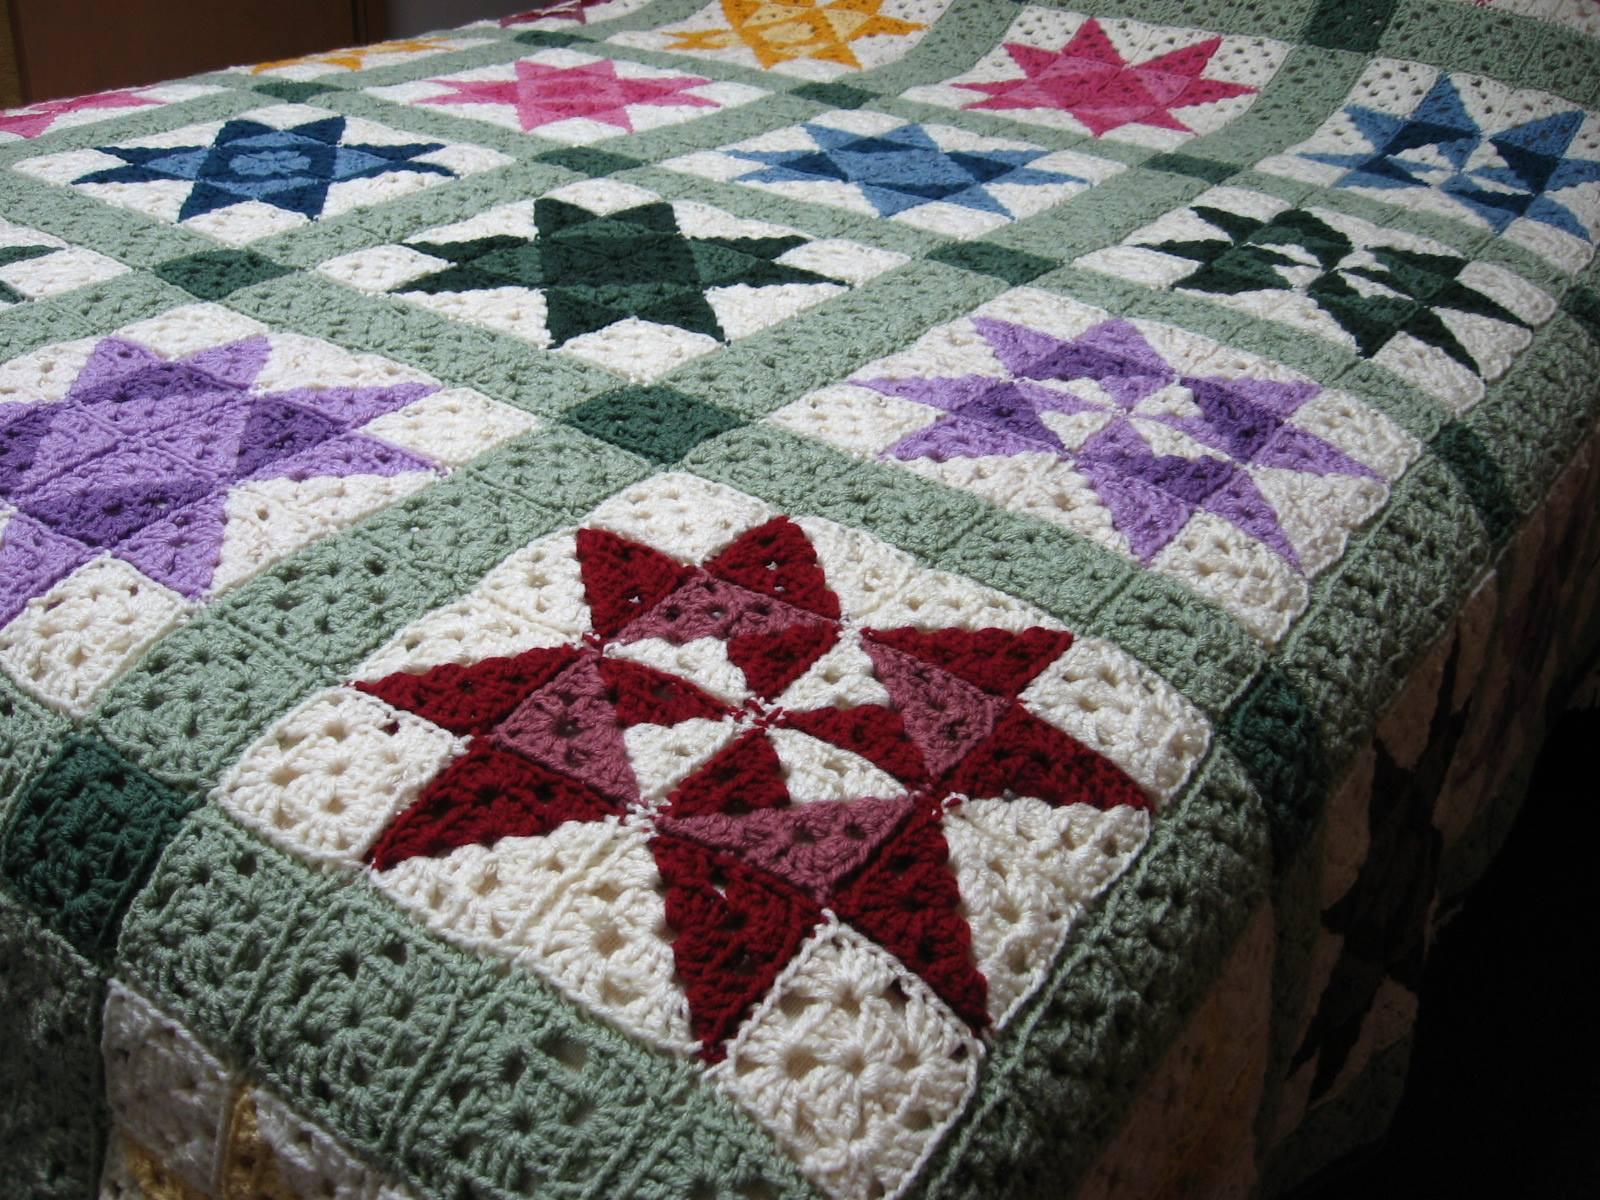 Crochet Afghan Patterns Beautiful Star Motif Granny Square Bedspread ⋆ Crochet Kingdom Of New 40 Pics Crochet Afghan Patterns